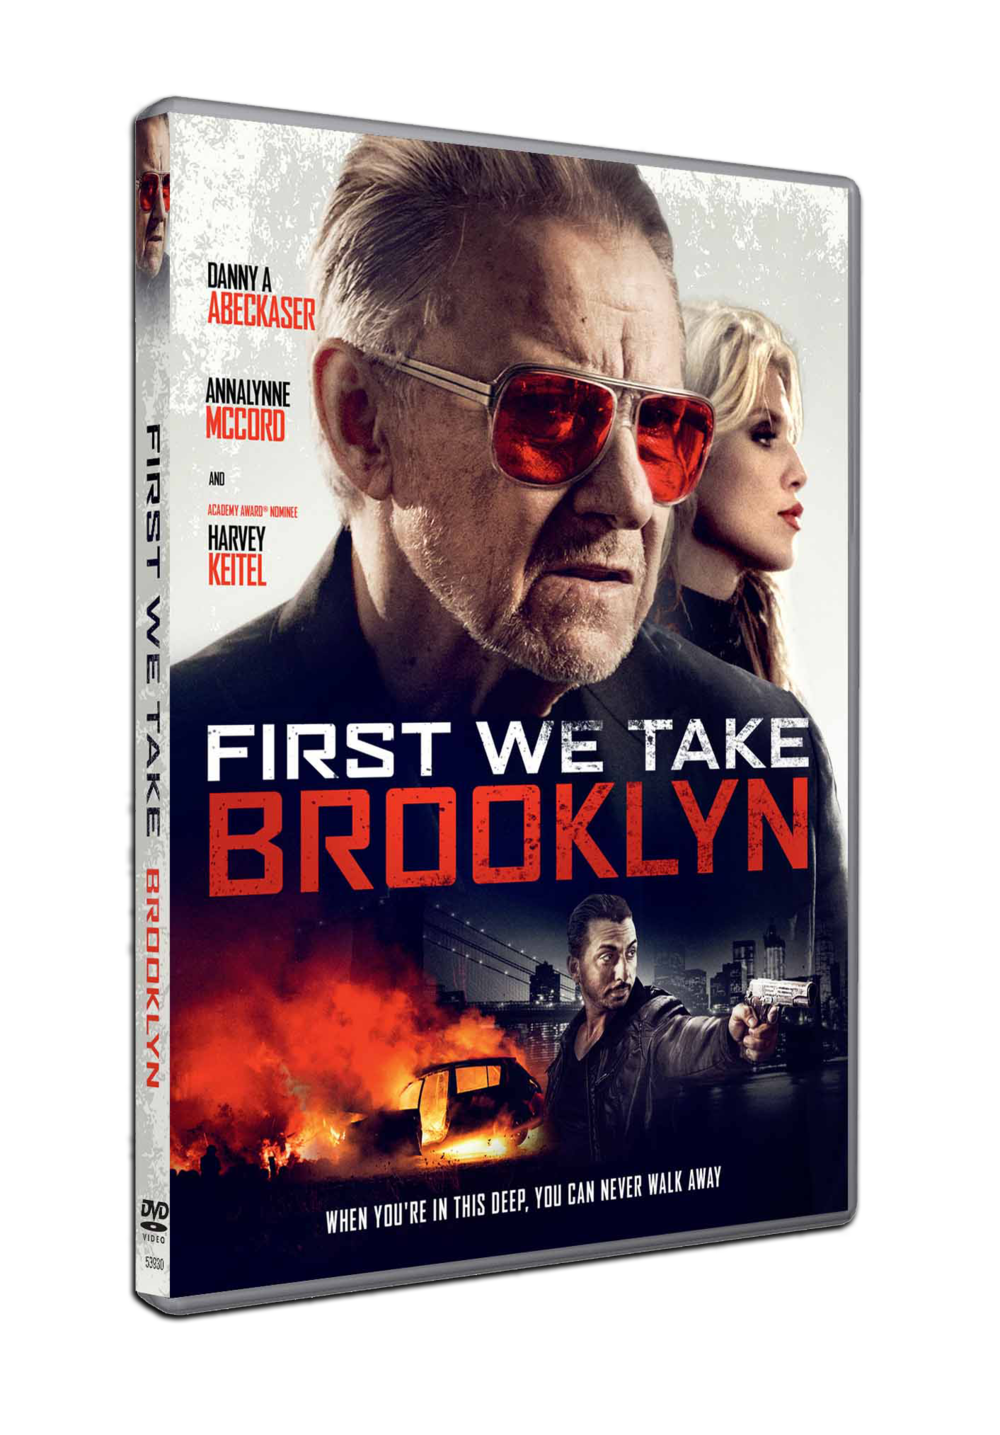 3909534_FIRST-WE-TAKE-BROOKLYN-[SPHE-ACQ]DVDSTD-13D-Pack-Shot---Copy.png